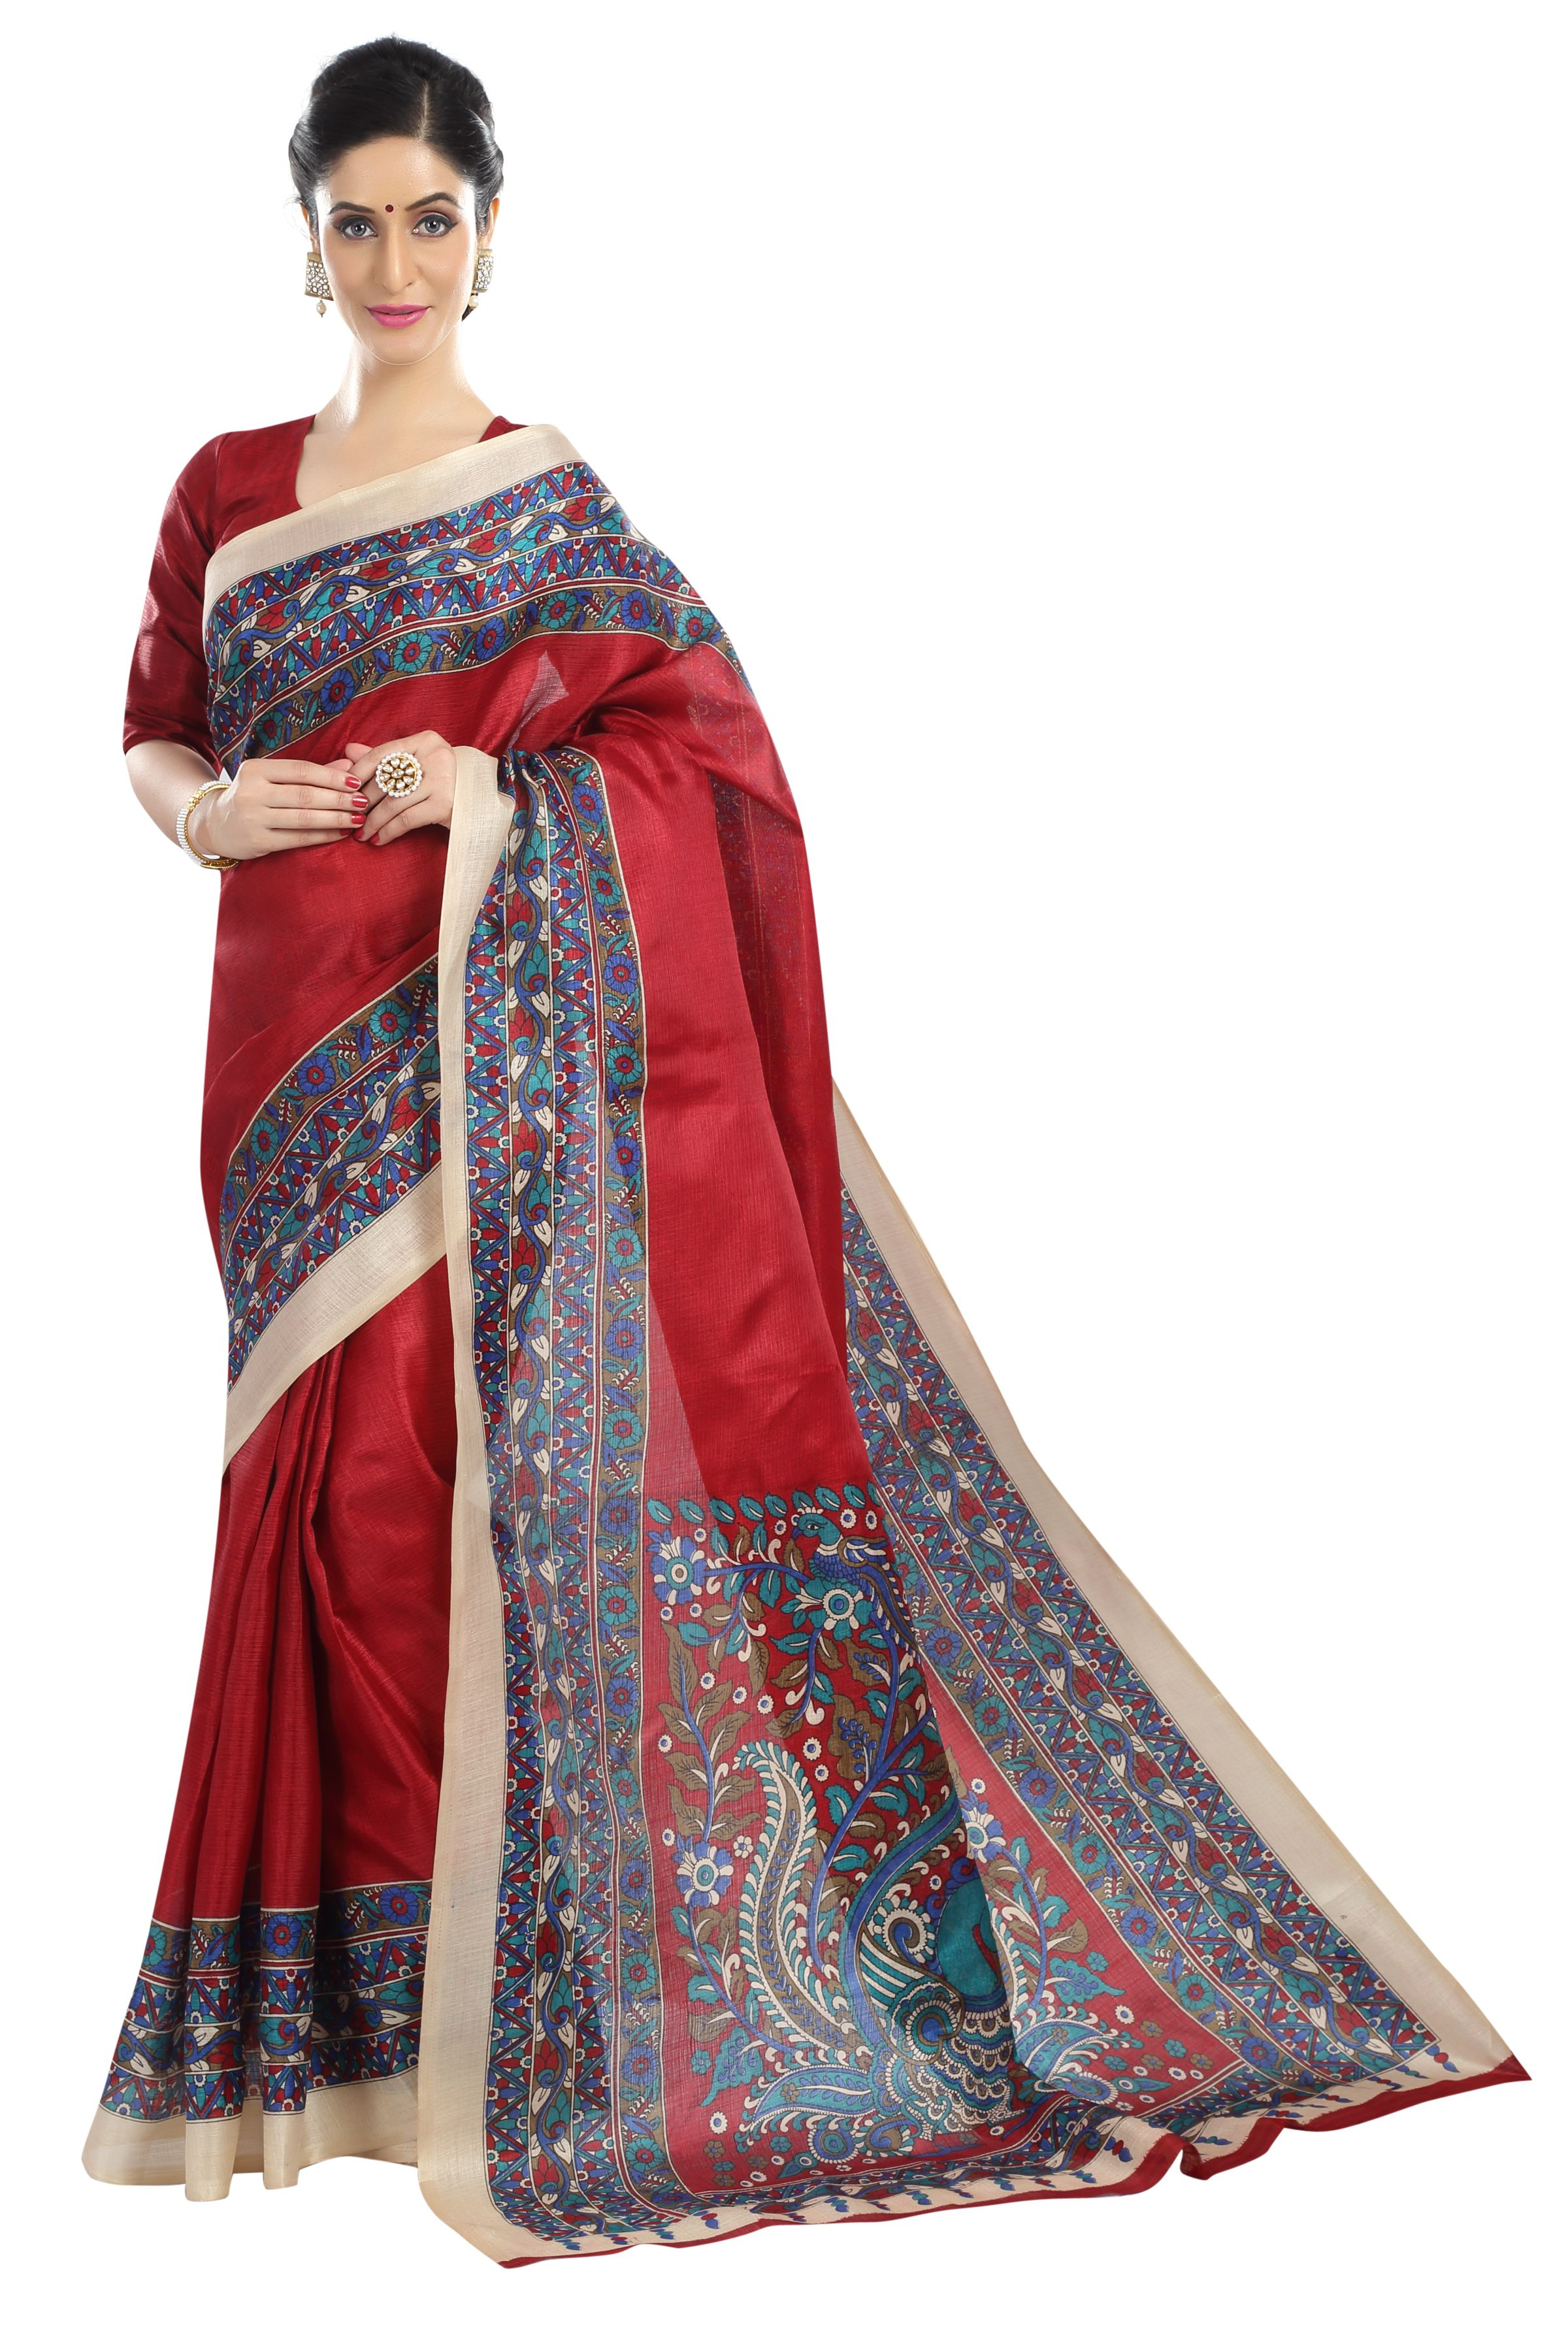 Fragrance Trendz Red Bhagalpuri Silk Saree